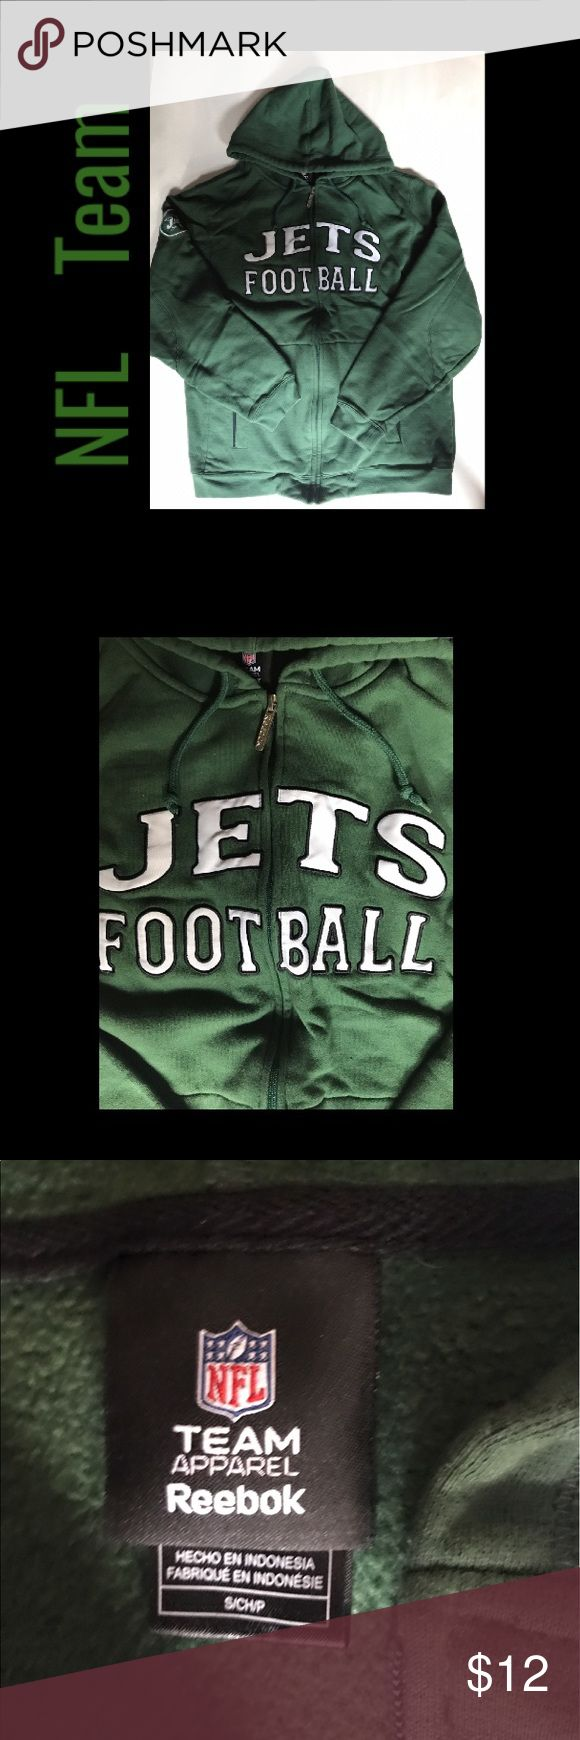 Jets Hoodie J-E-T-S! An NFL Team Apparel by Reebok. Long Sleeved Hoodie. Full zip. Fleece lining. Team logo on chest and right sleeve. Left sleeve it says company name. Excellent condition. Clean. Minimally worn. Reebok Shirts Sweatshirts & Hoodies